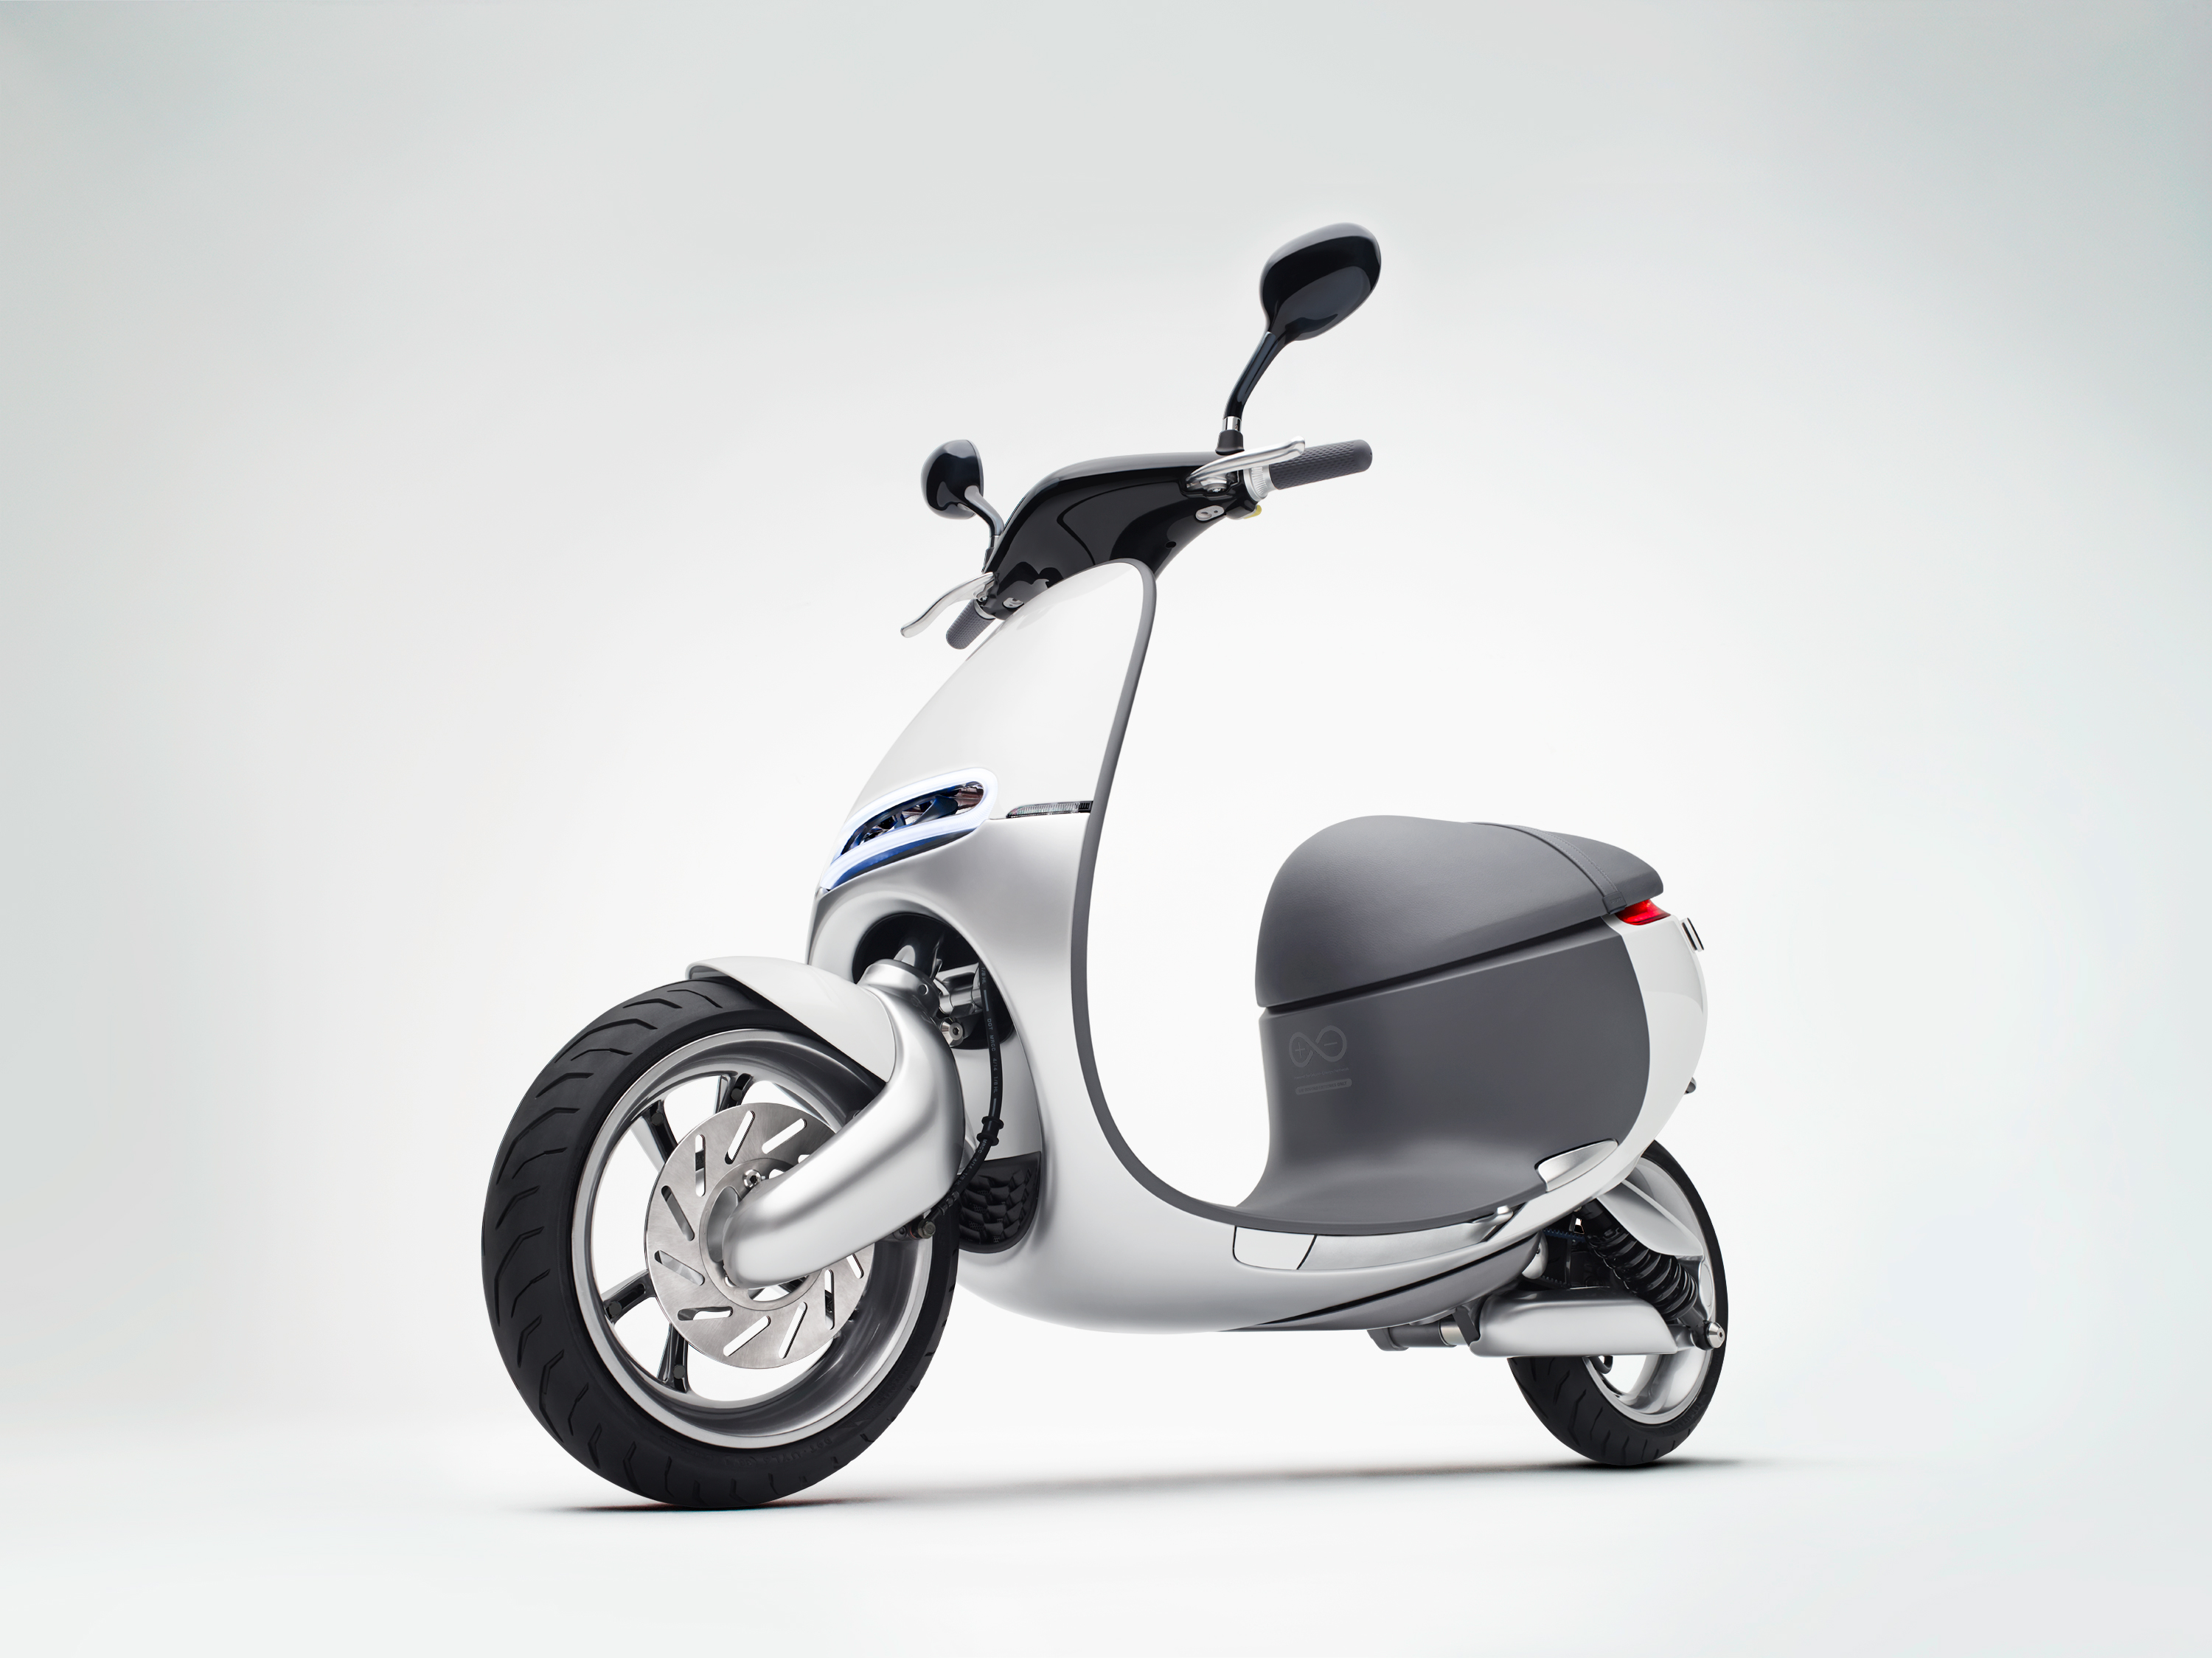 gogoro-front-left-quarter-view-06171.jpg